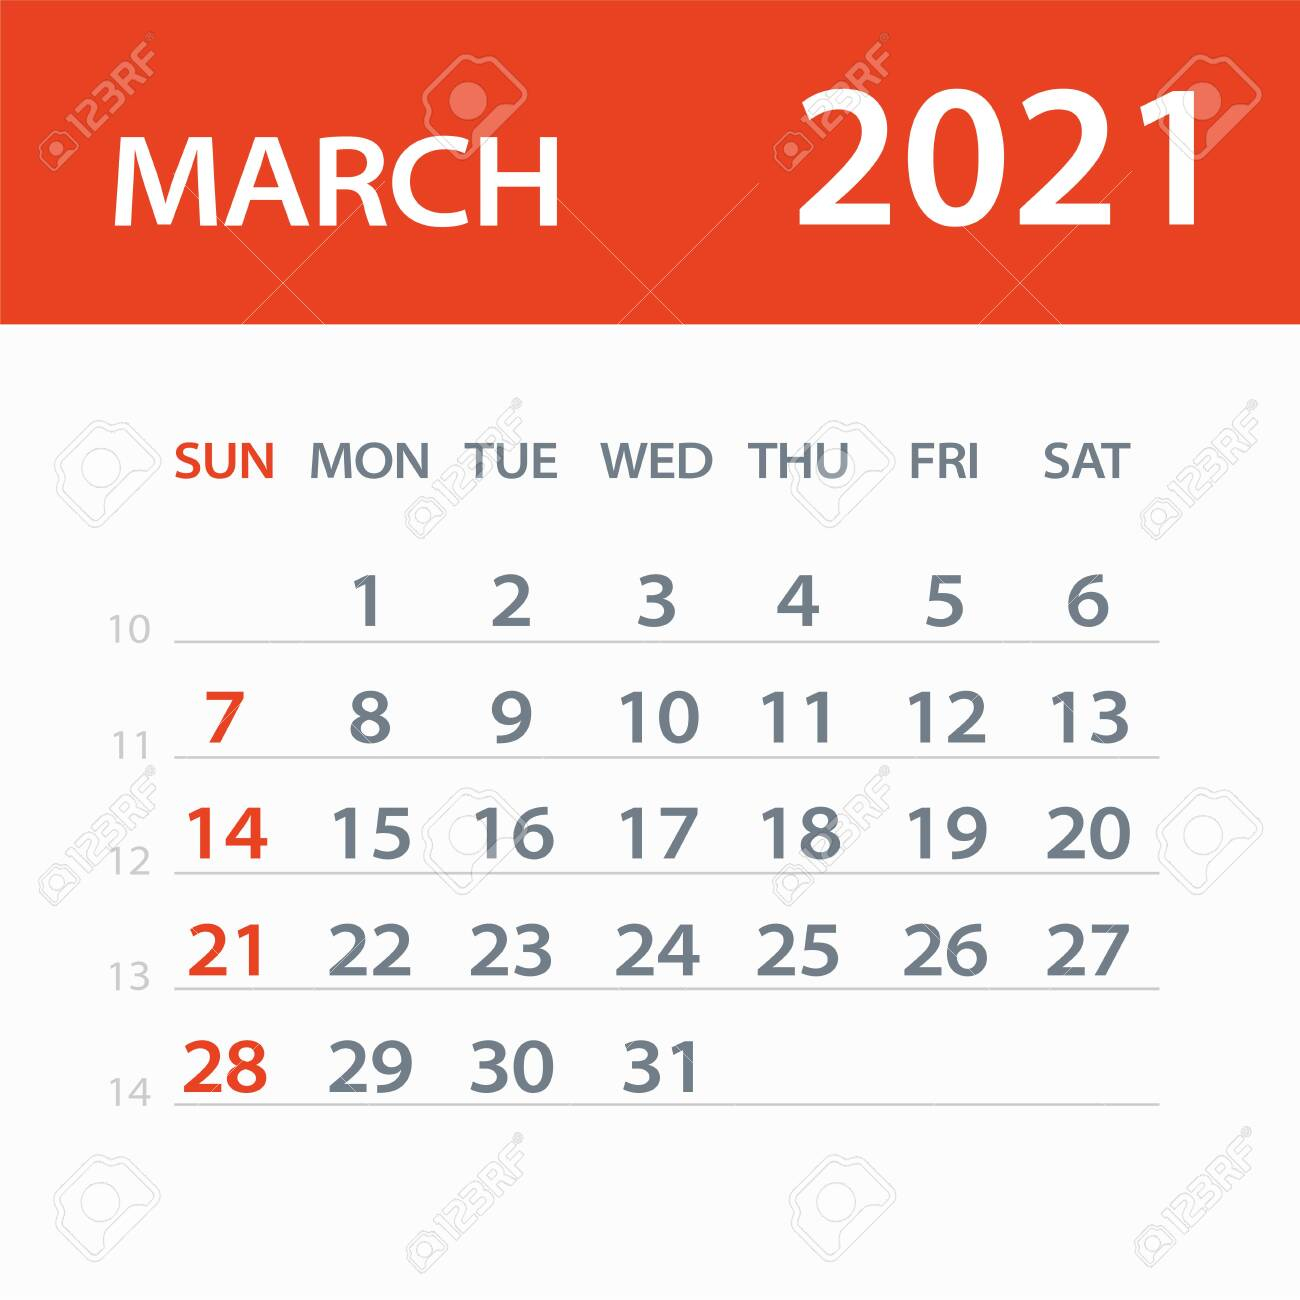 photo stock vector march 2021 calendar leaf illustration vector graphic page